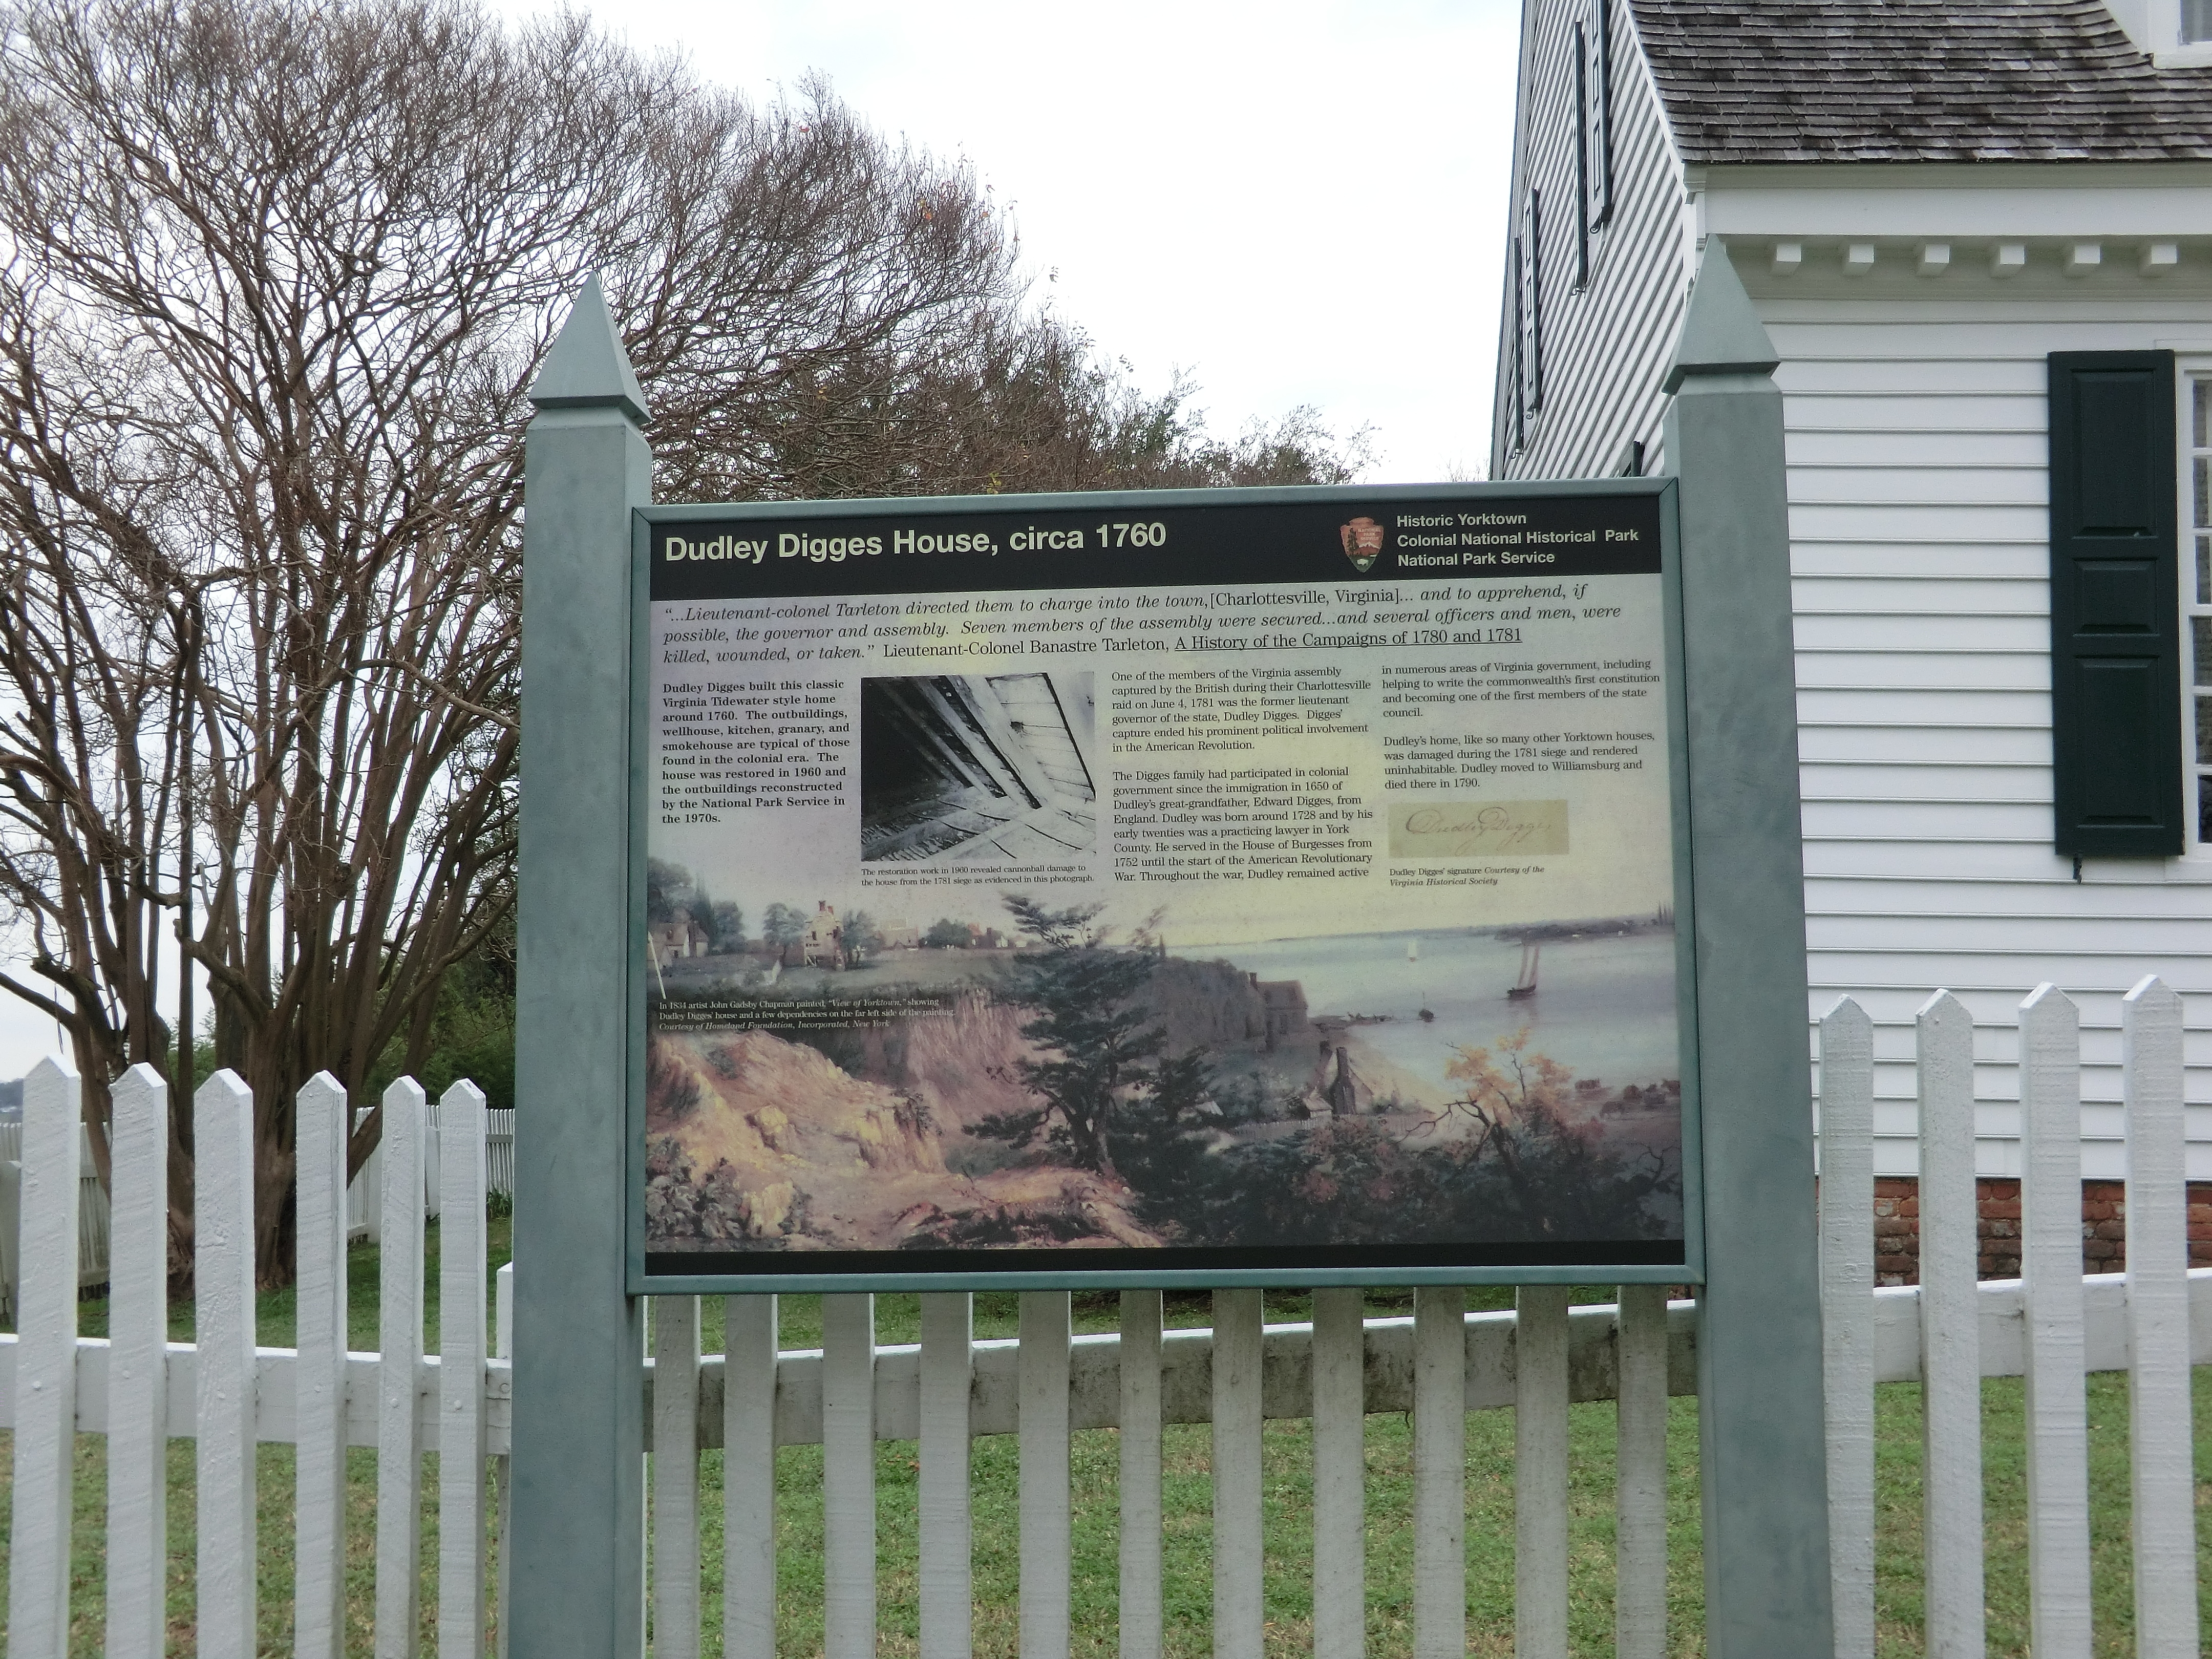 Dudley Digges House, circa 1760 Marker